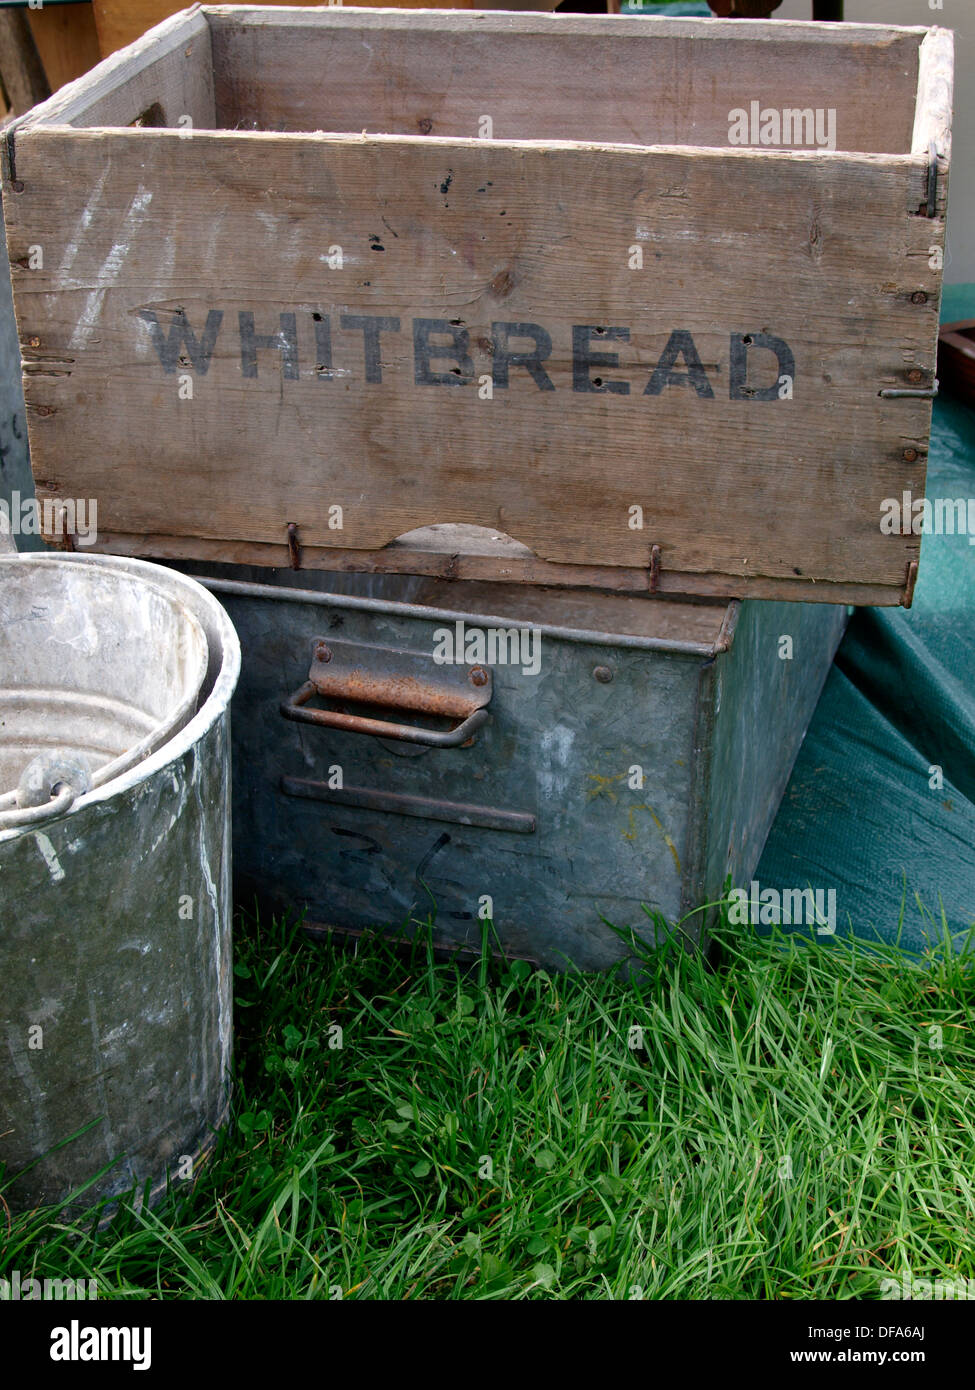 Old Wooden Whitbread Box For Sale At Car Boot Sale Uk 2013 Stock